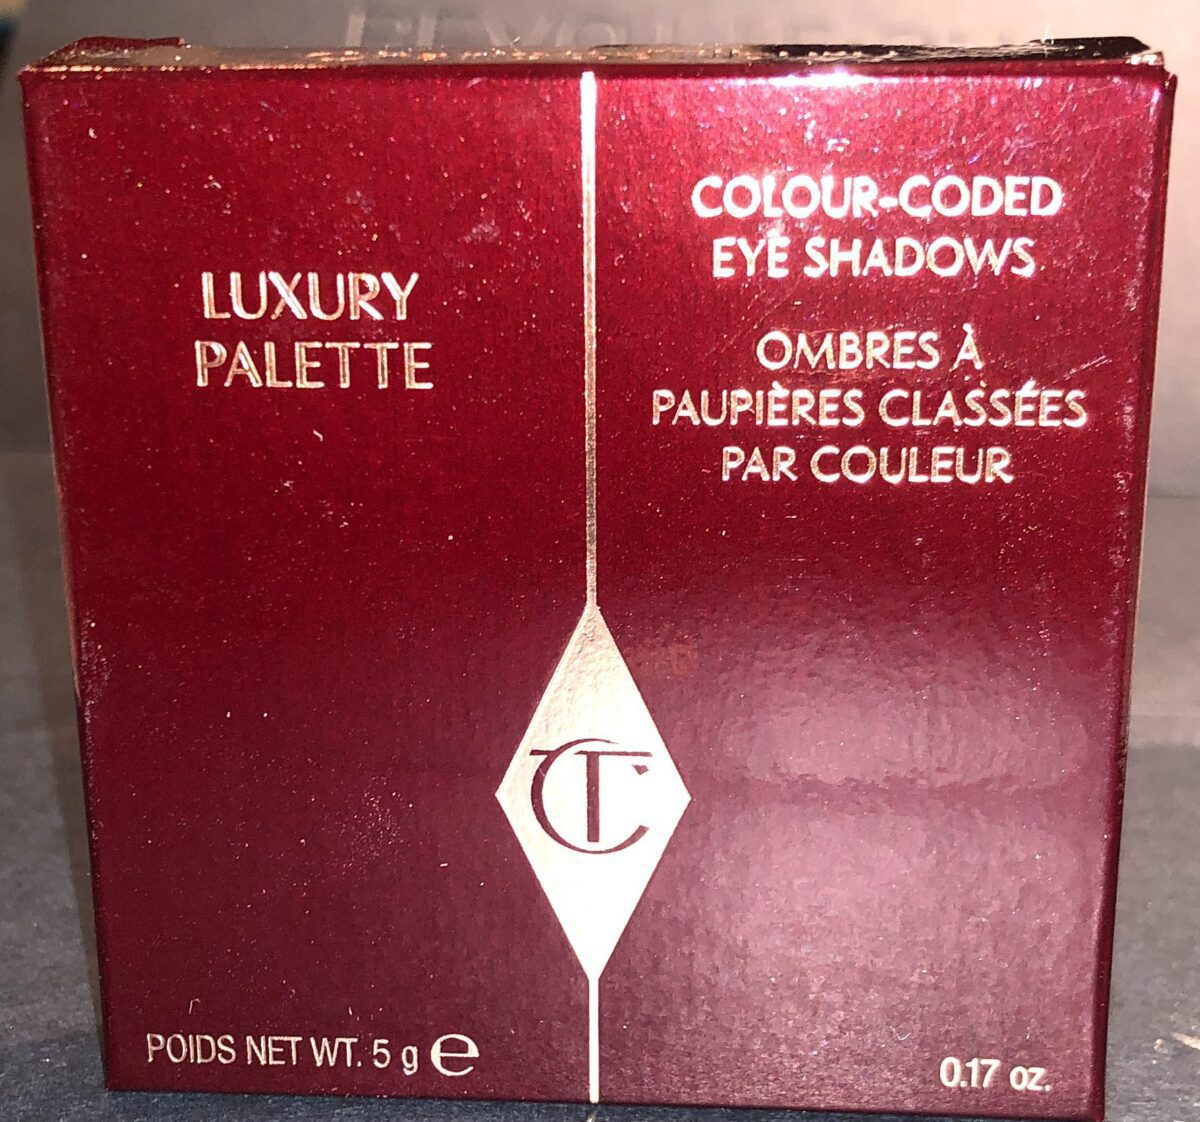 THE FRONT OF THE NEW CHARLOTTE TILBURY QUADS OUTER PACKAGING BOX